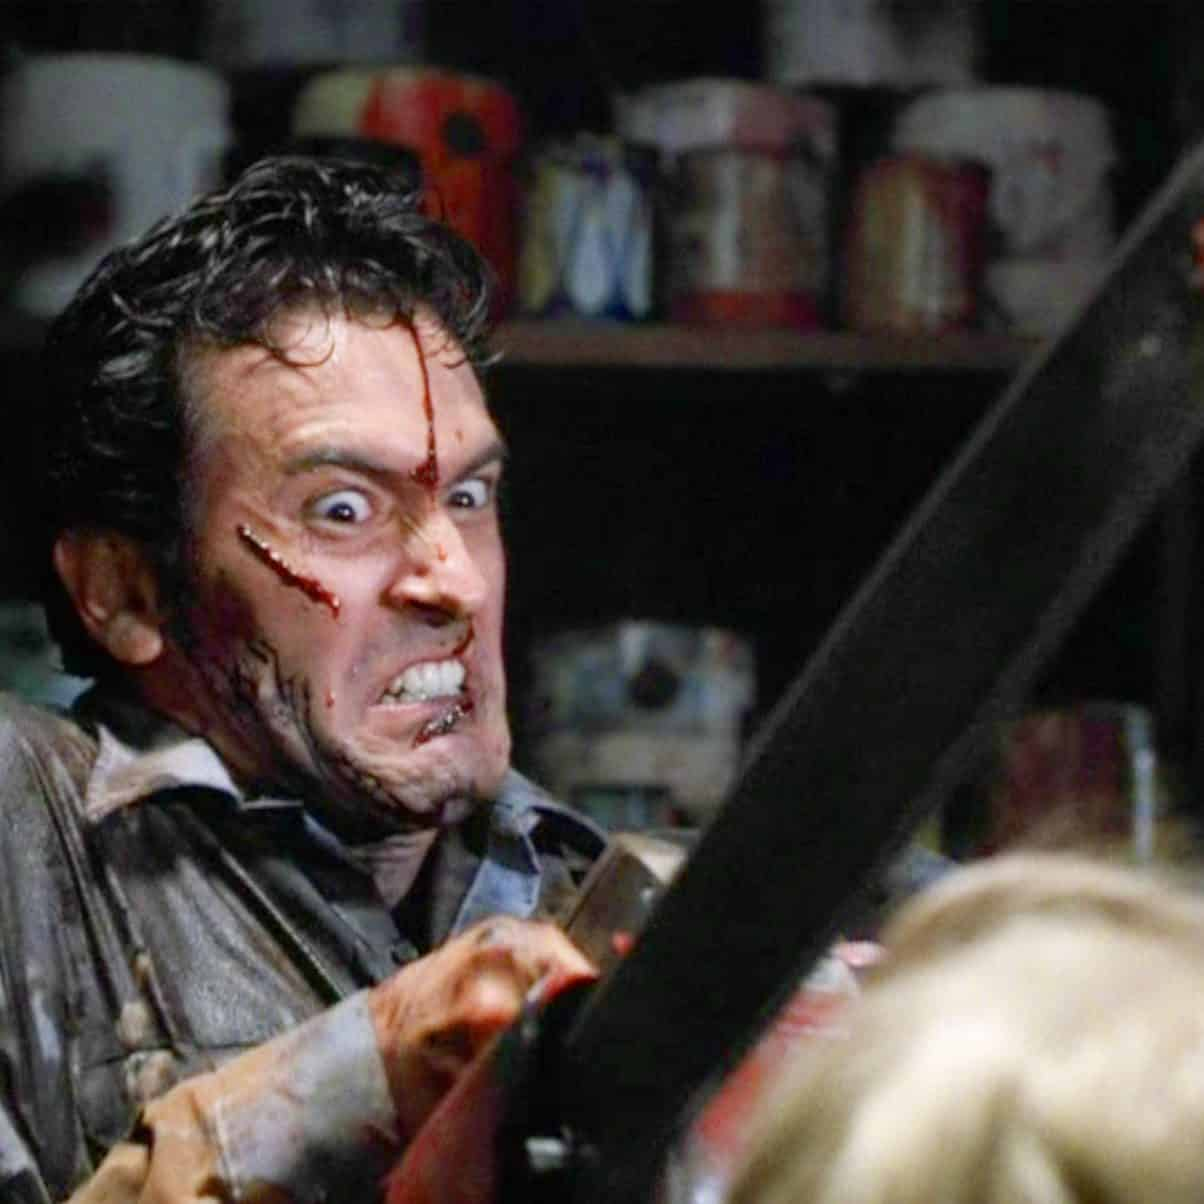 ed21 e1571835538823 Bruce Campbell's Plastic Surgery and 19 Other Things You Didn't Know About Army of Darkness